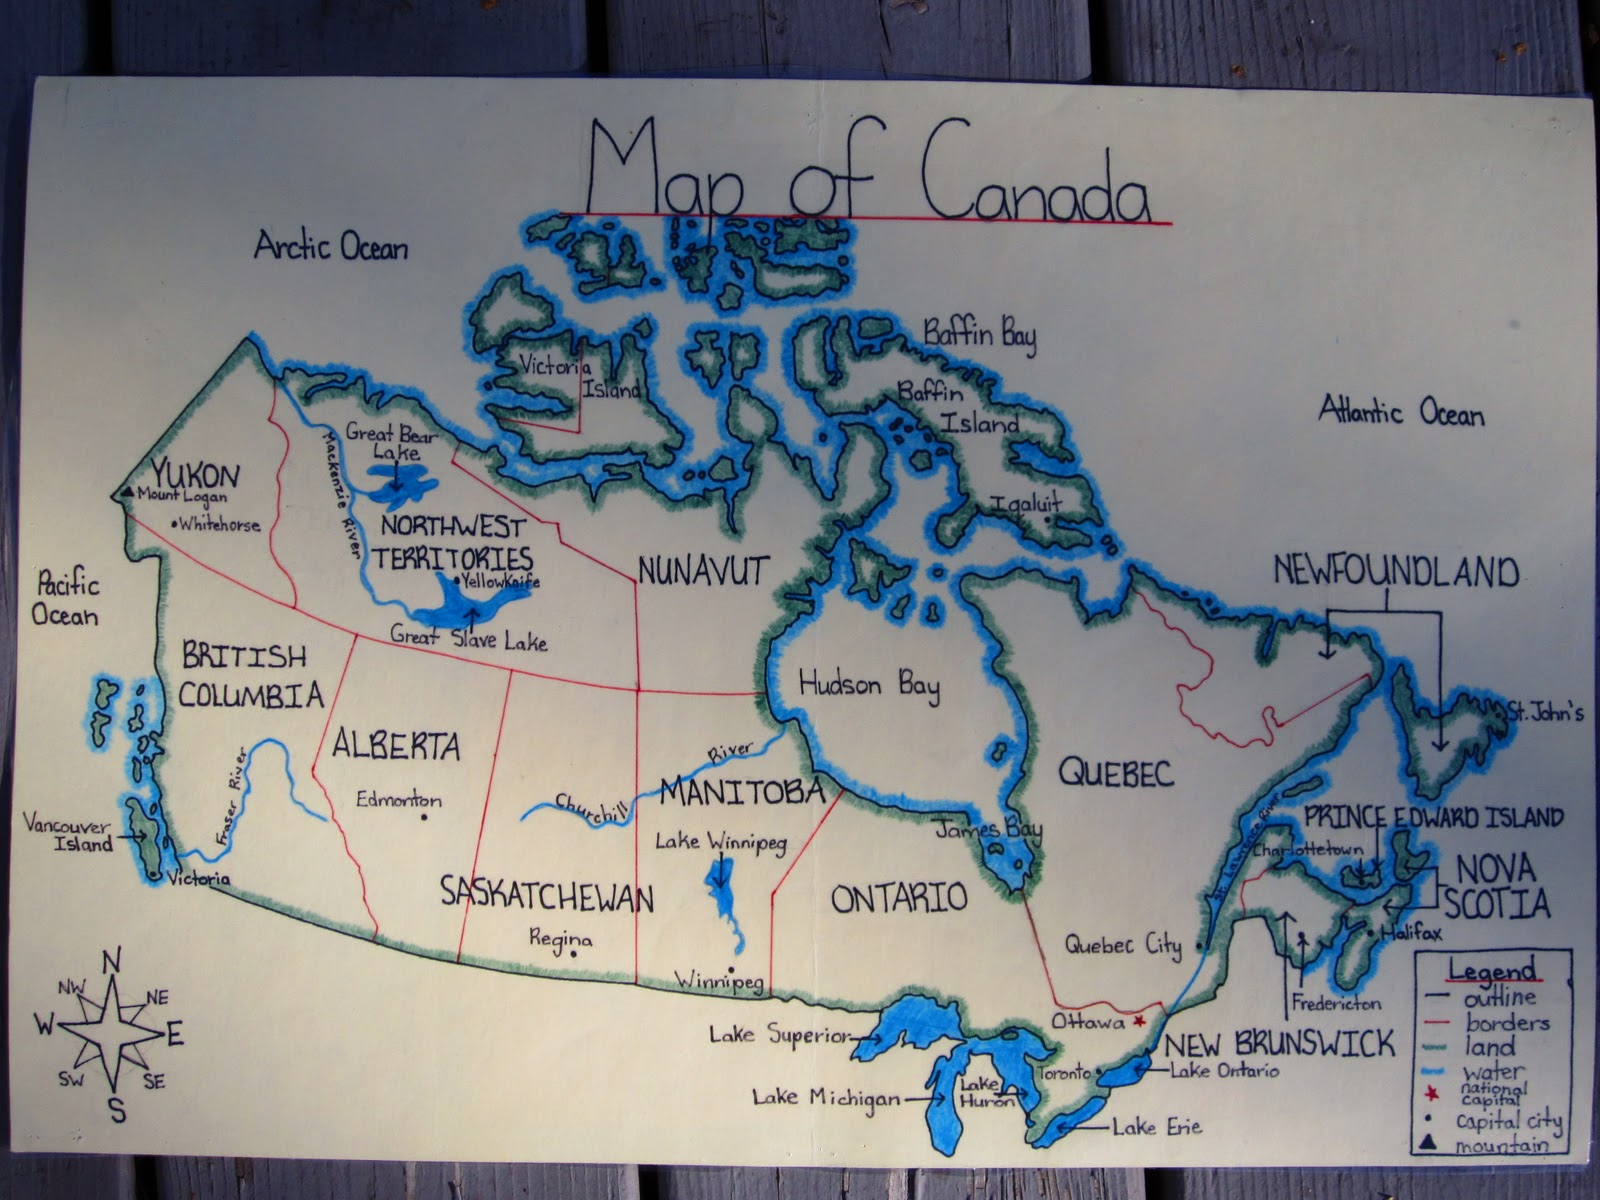 Grade 9 Map Of Canada Assignment.Grade 9 Map Of Canada Assignment Kameroperafestival